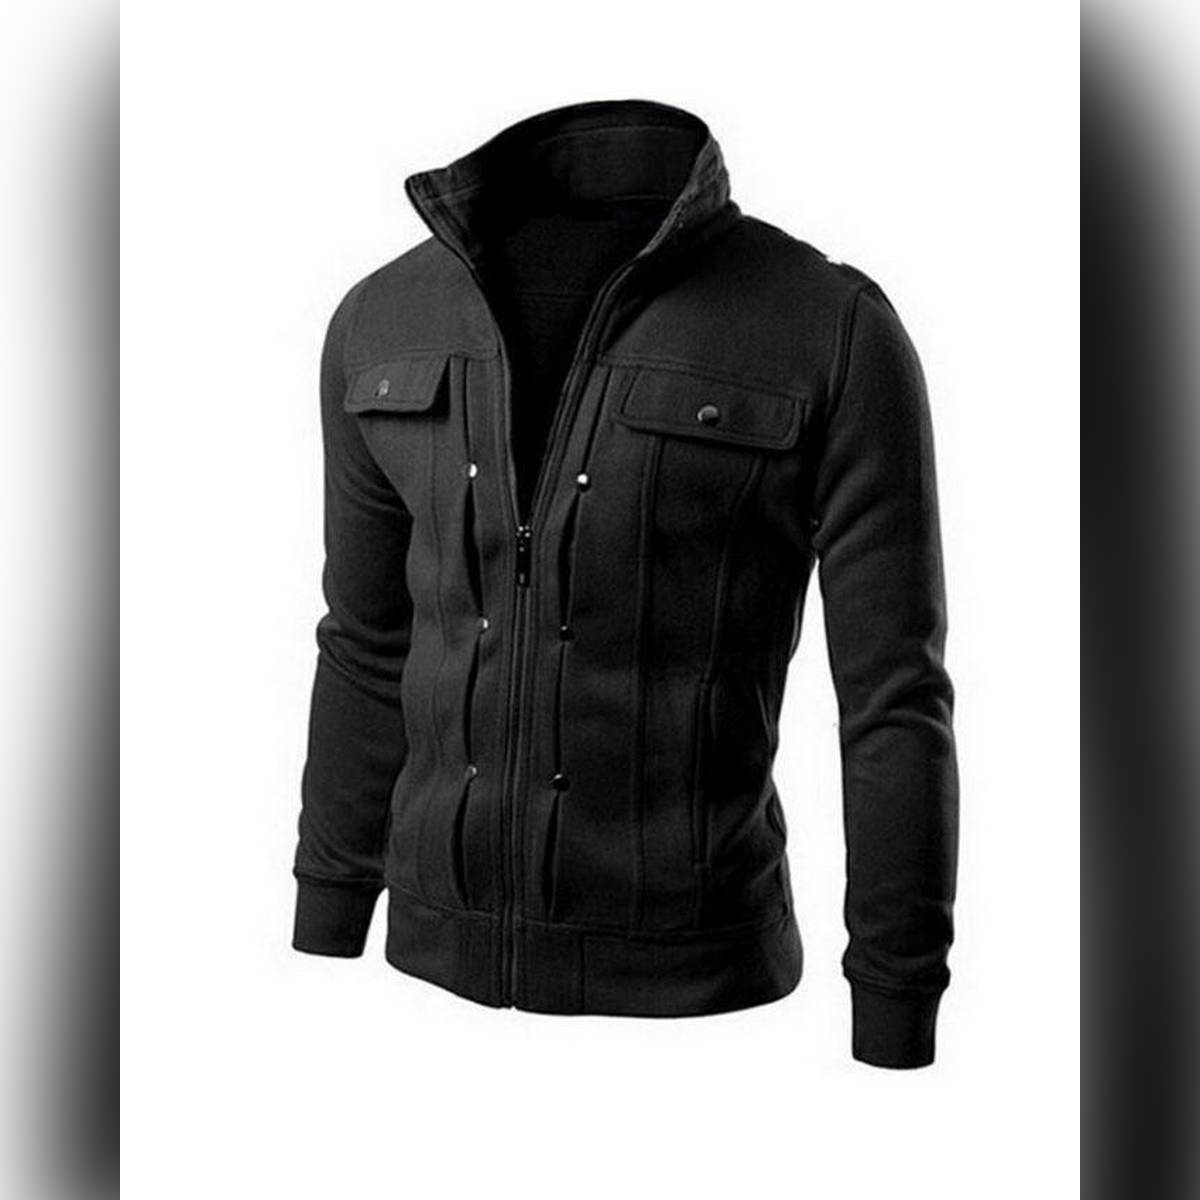 Black Mexican jacket for Men  with Front Pocket